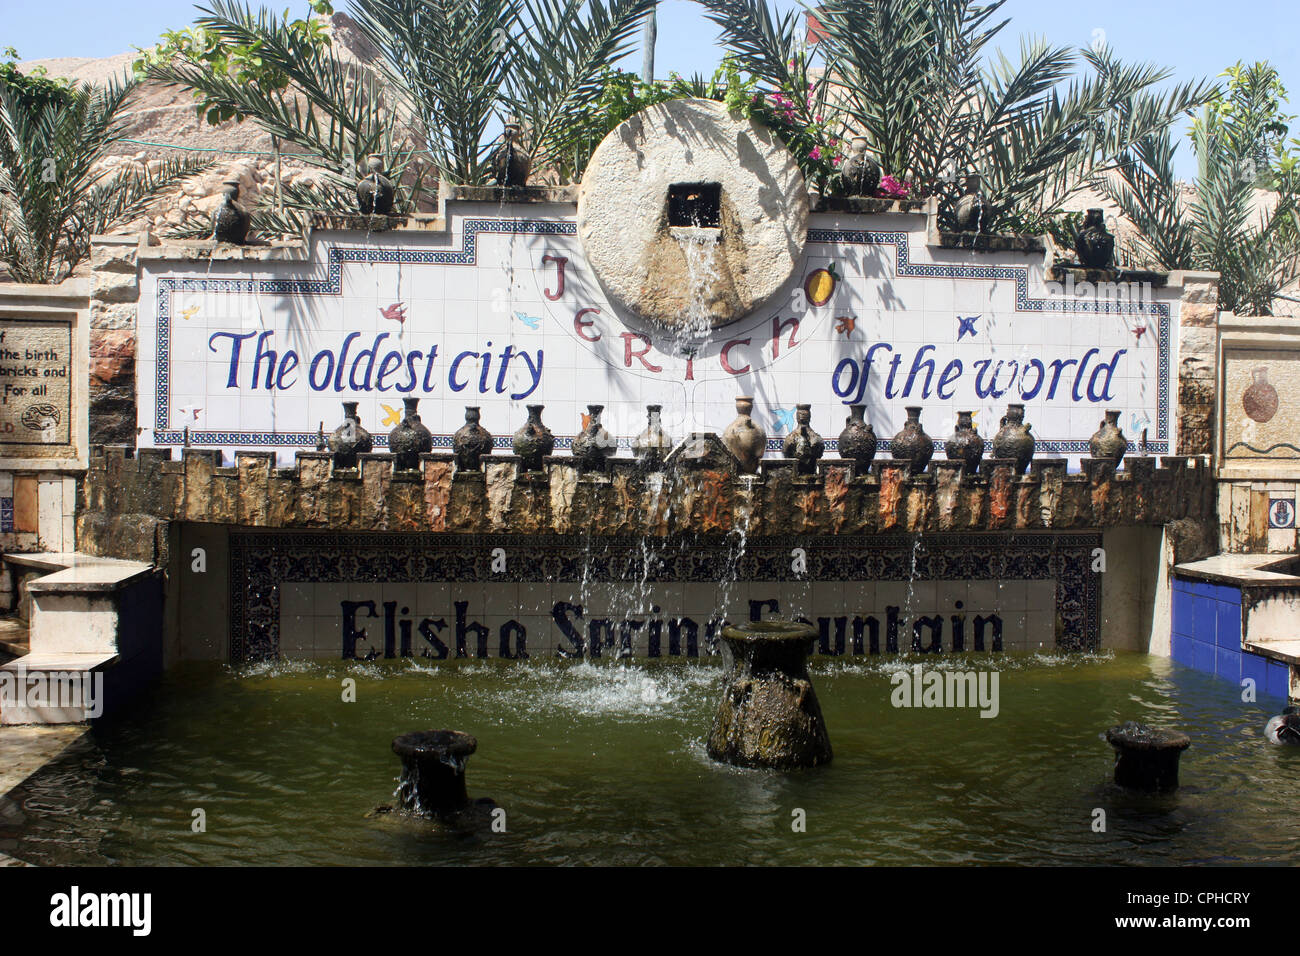 City of Jericho  the oldest city of the world .  Elisha Spring fountain with this message - Stock Image